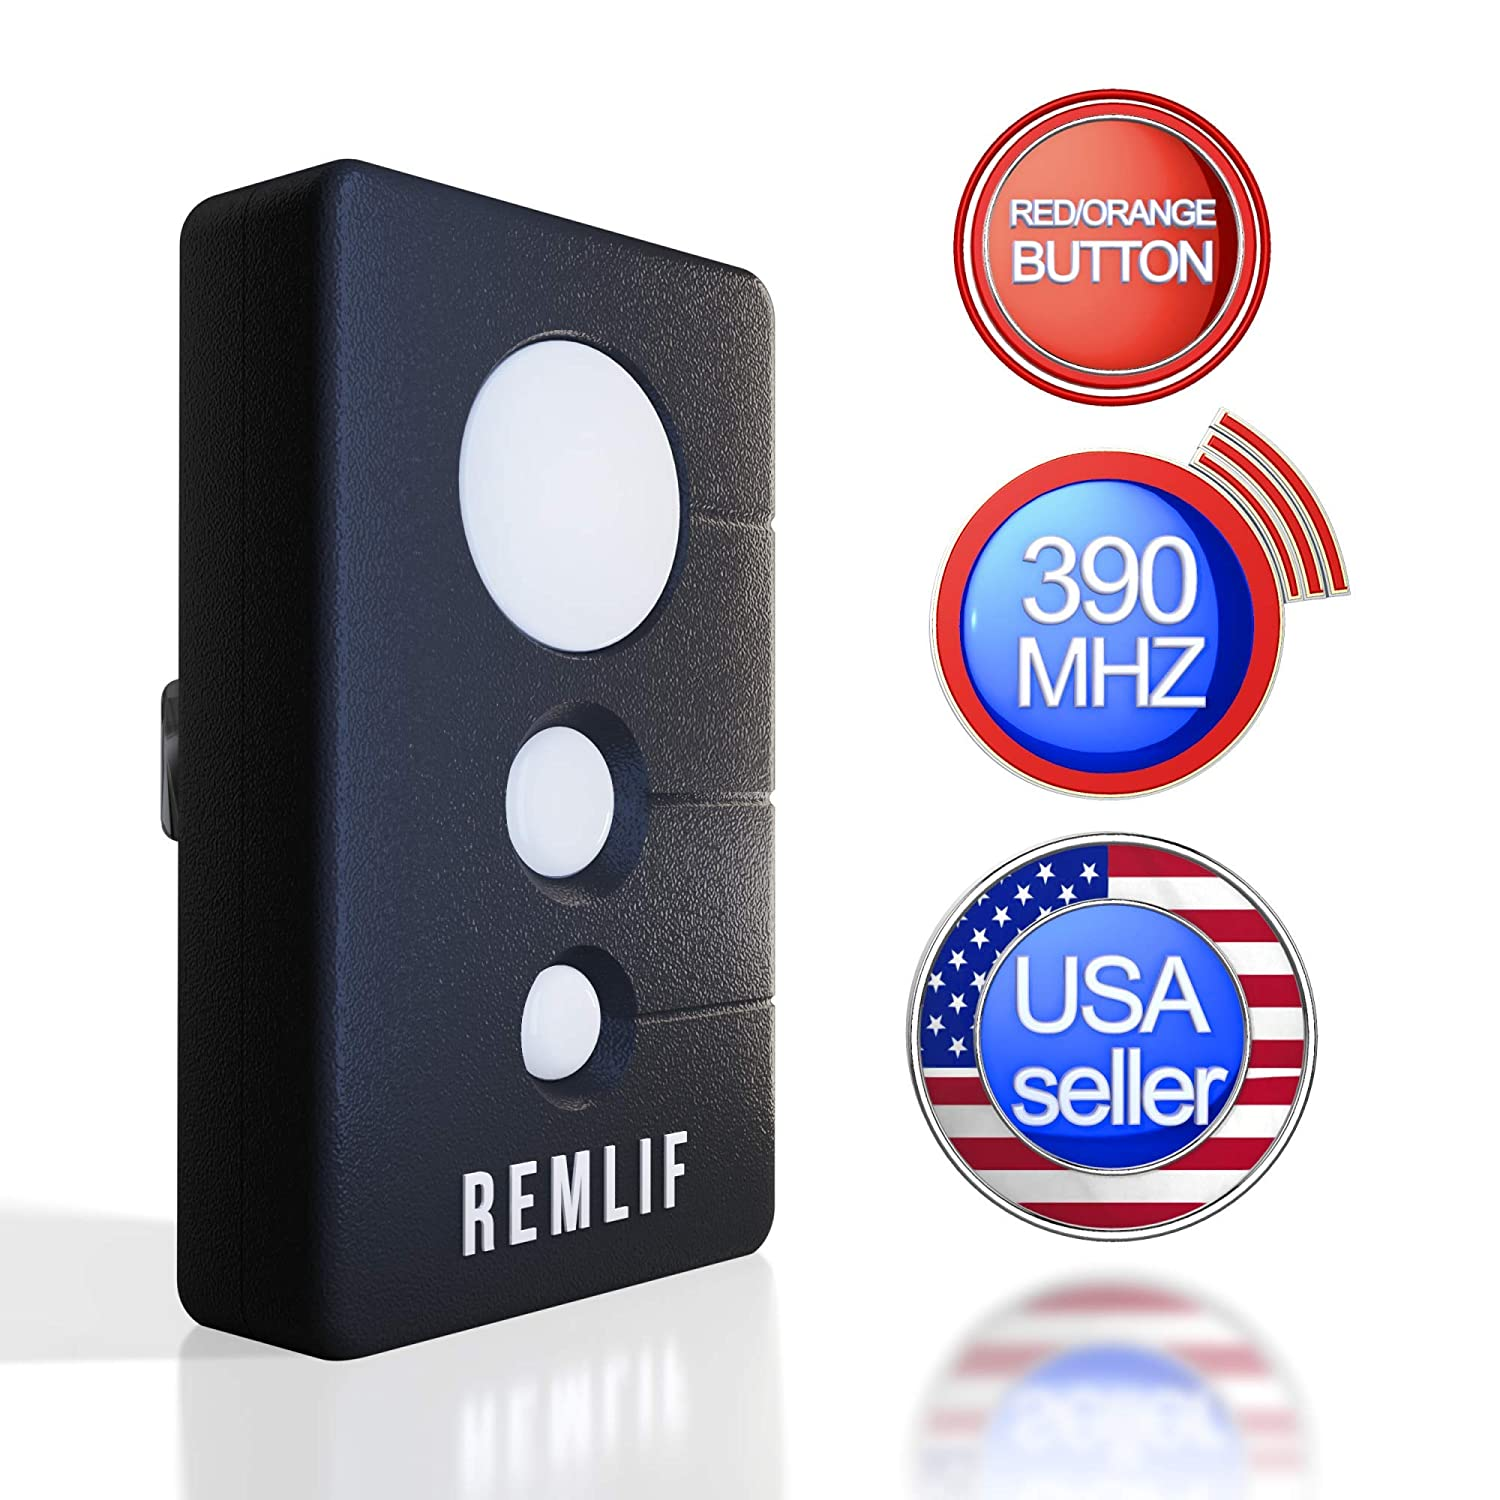 Remlif Garage Door Opener Remote Control Compatible 390mhz Replacement LiftMaster 970LM 971LM 972LM Craftsman 139.53681b Chamberlain 953CB Includes Visor Clip with Red Orange Learn Button